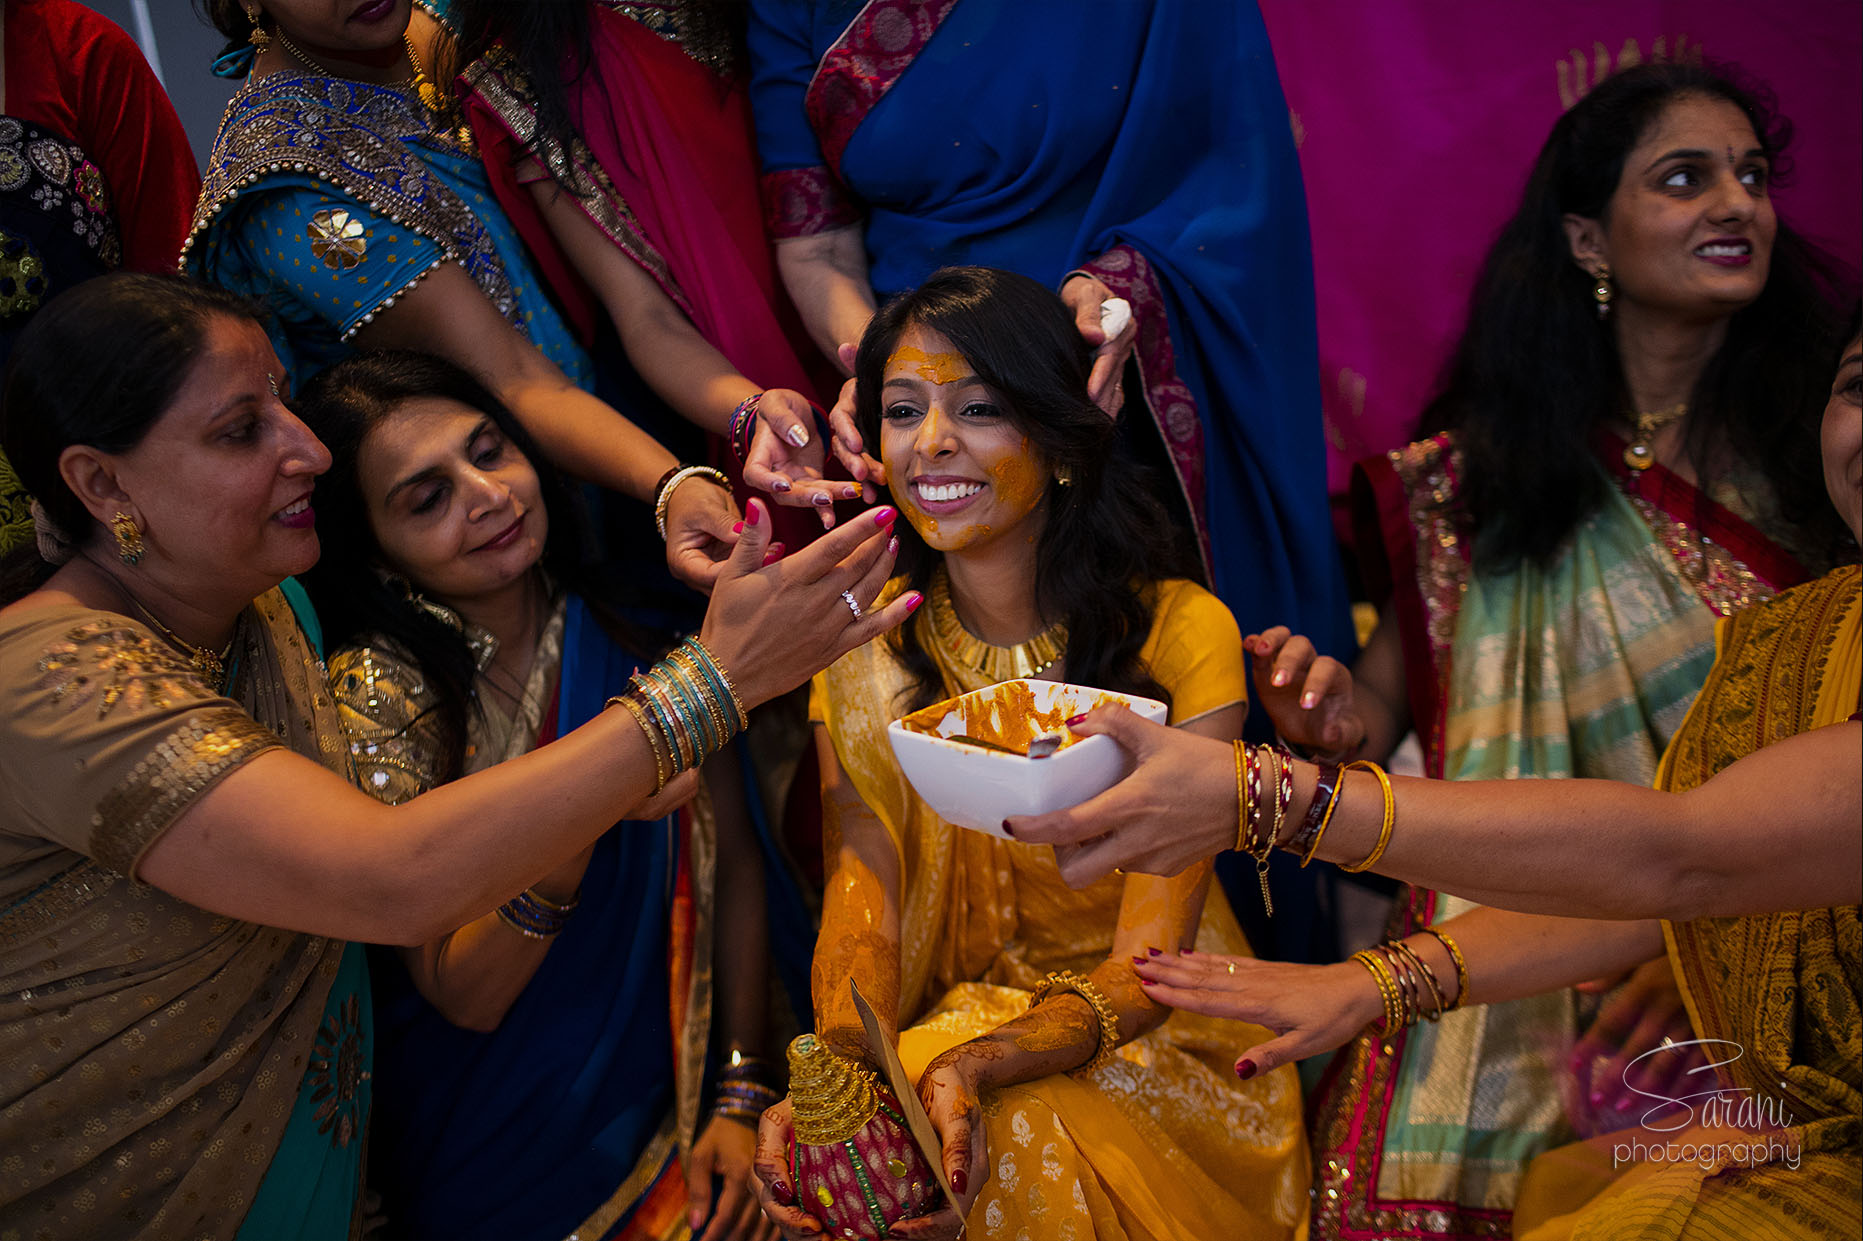 mexico-weddings-krishna-mihir-14.jpg